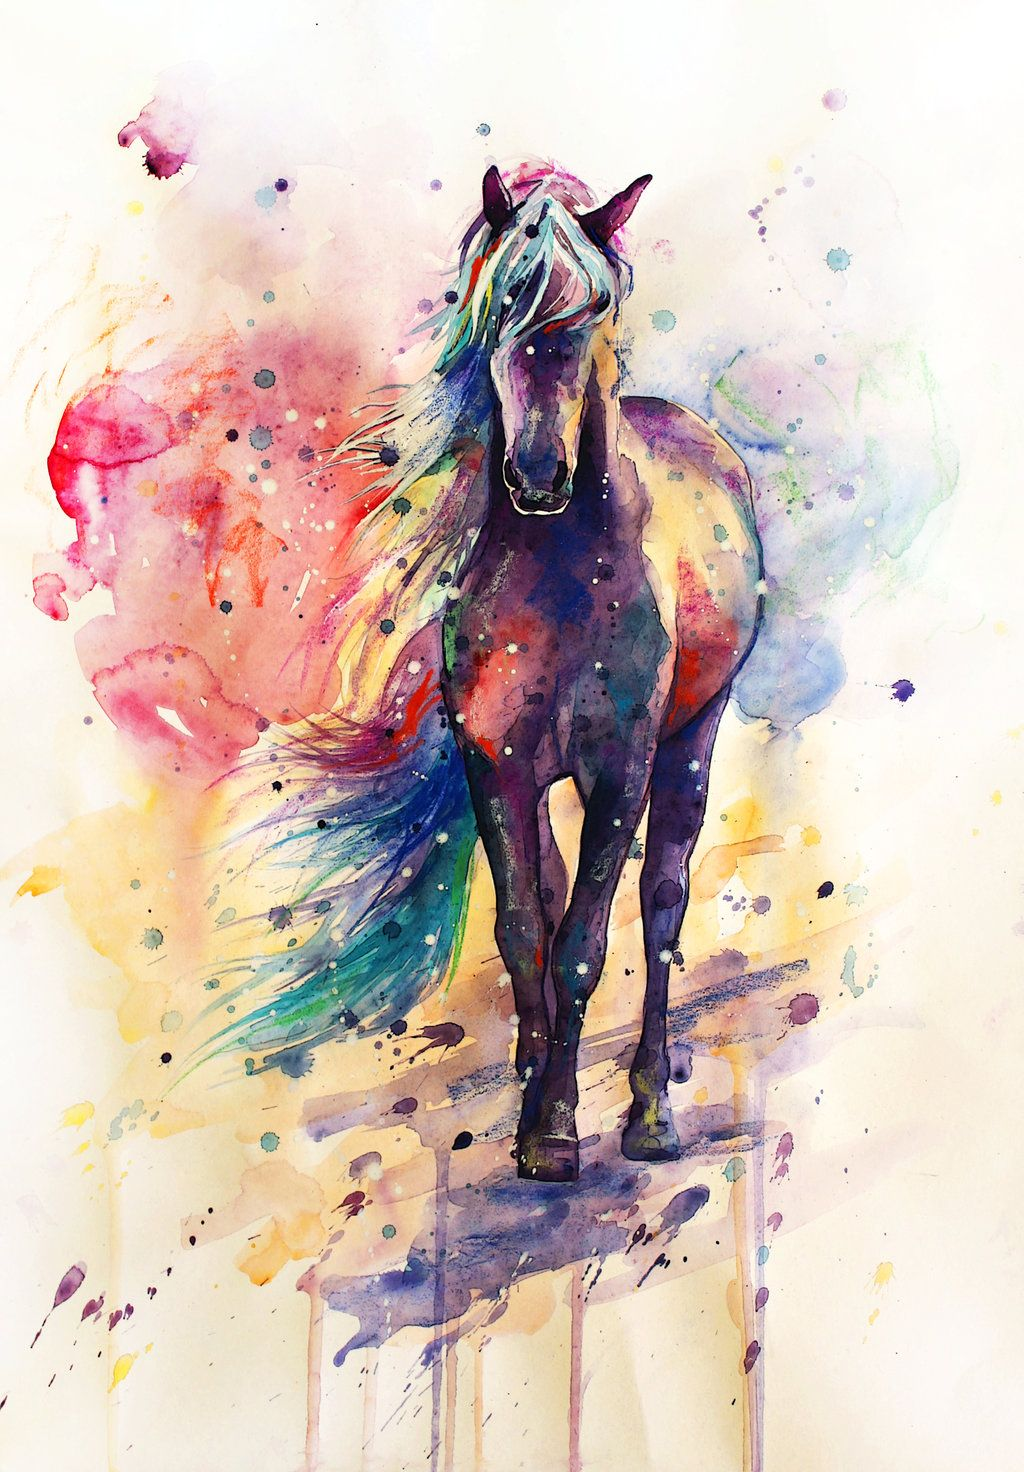 30 By Elenashved Deviantart Com On Deviantart Peinture Cheval